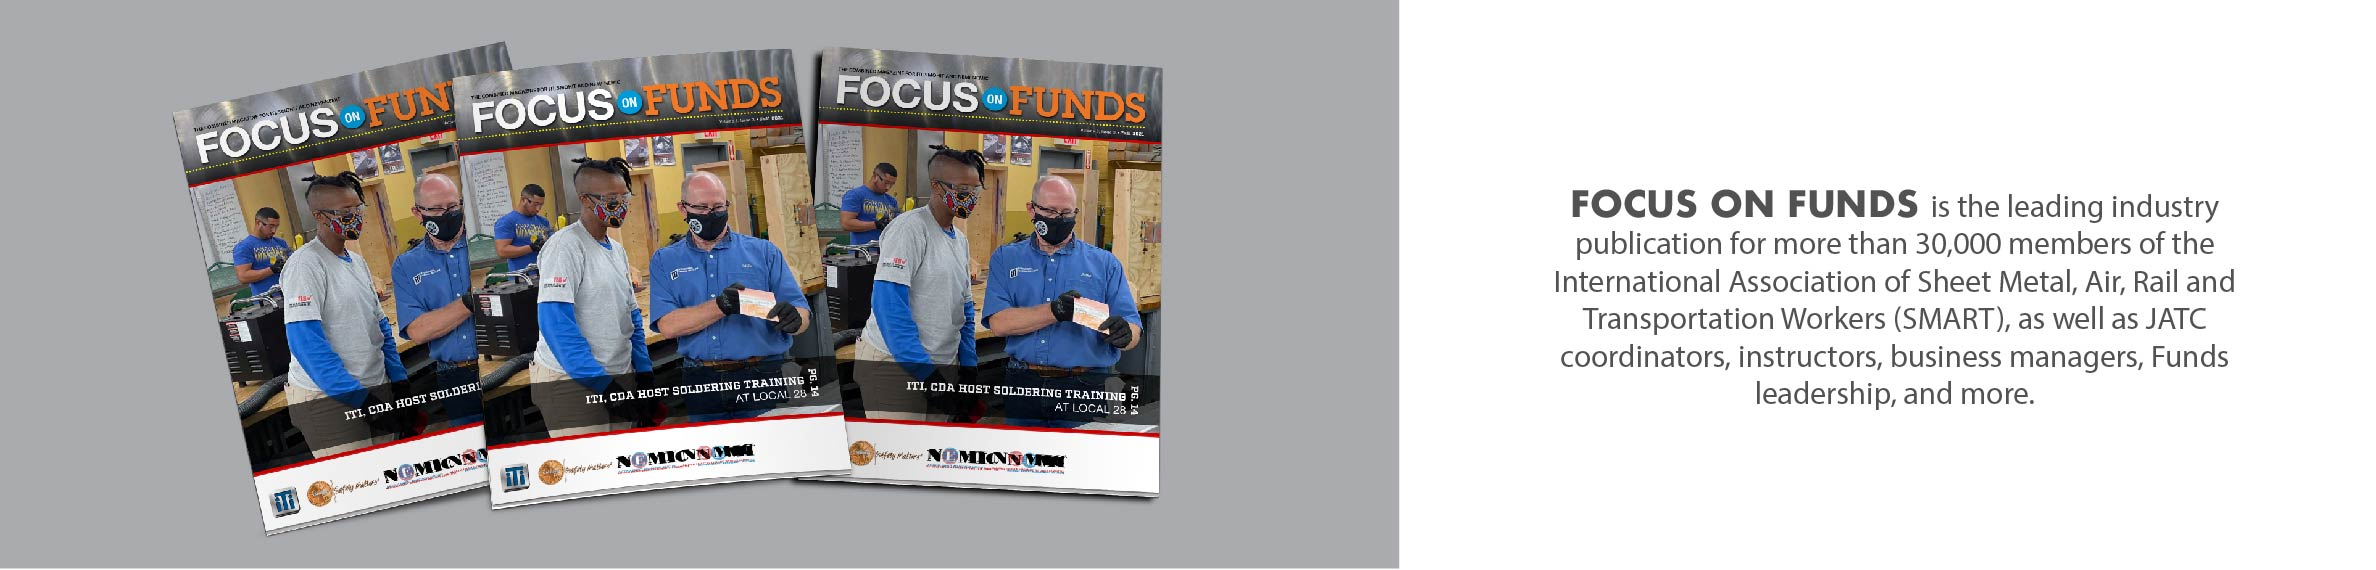 Focus On Funds slide